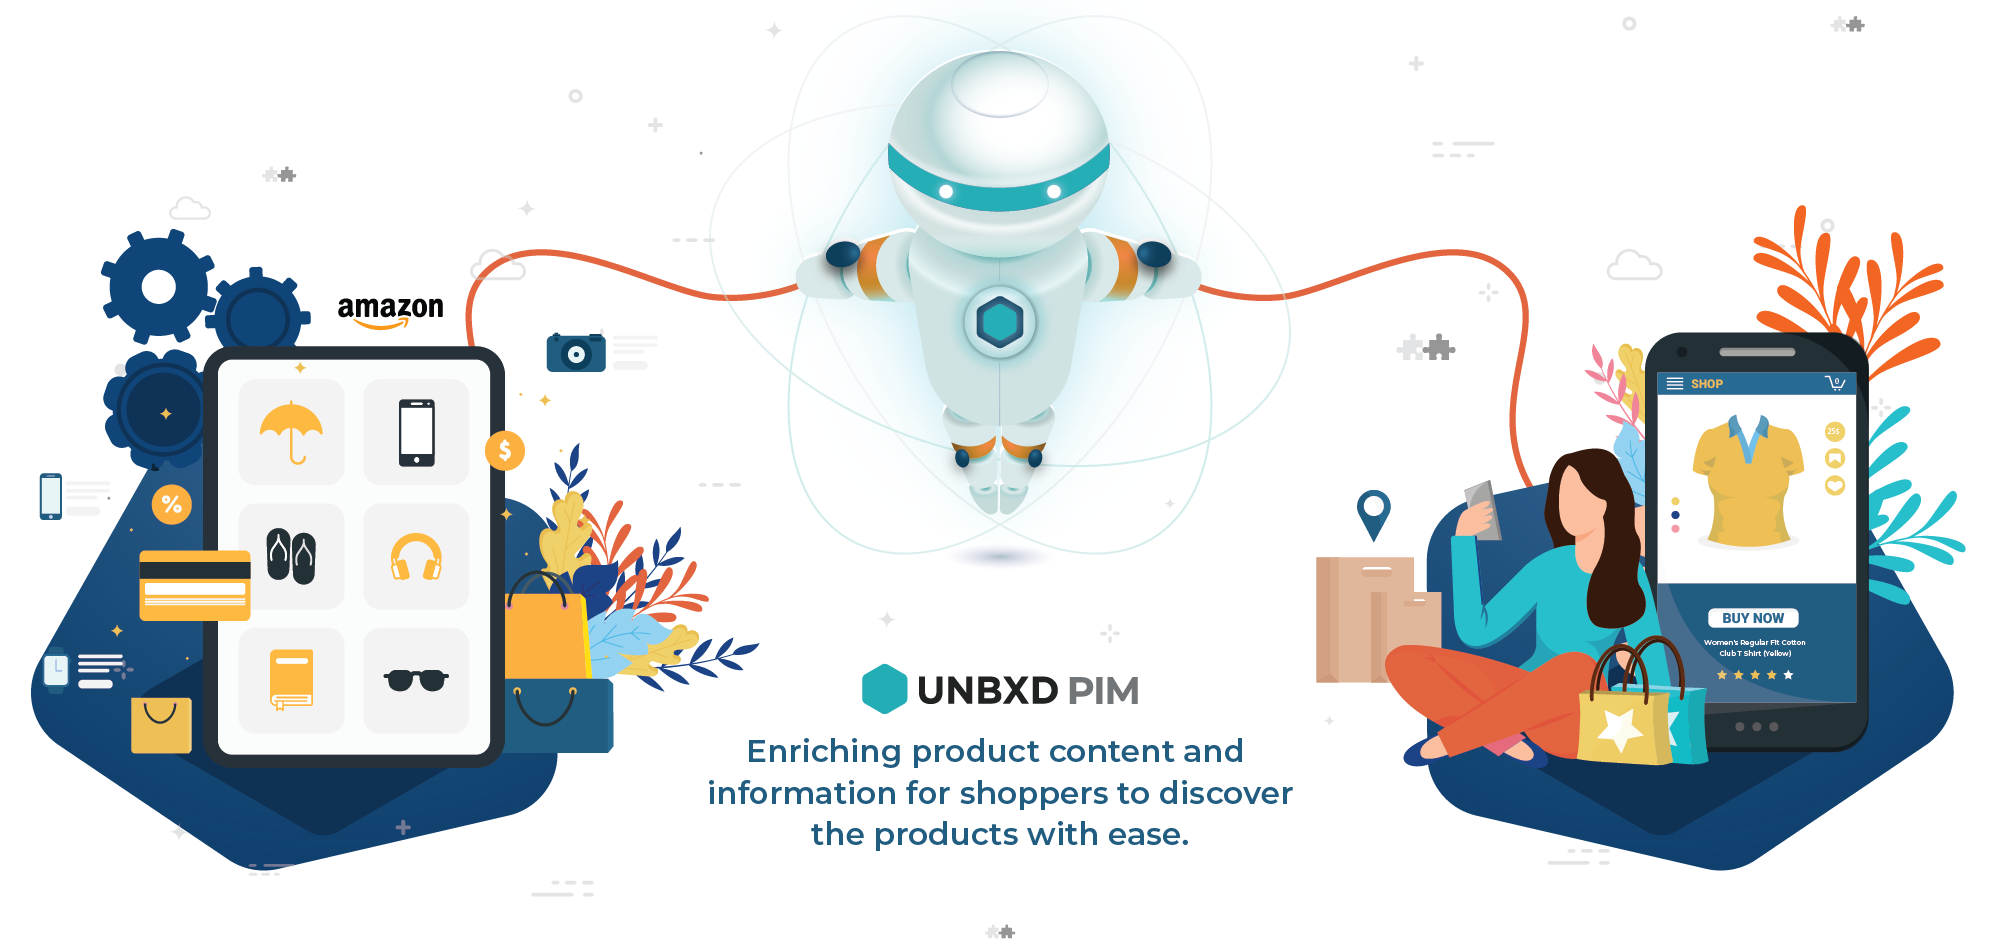 Unbxd PIM solving the challenges for retail sellers on Amazon marketplace